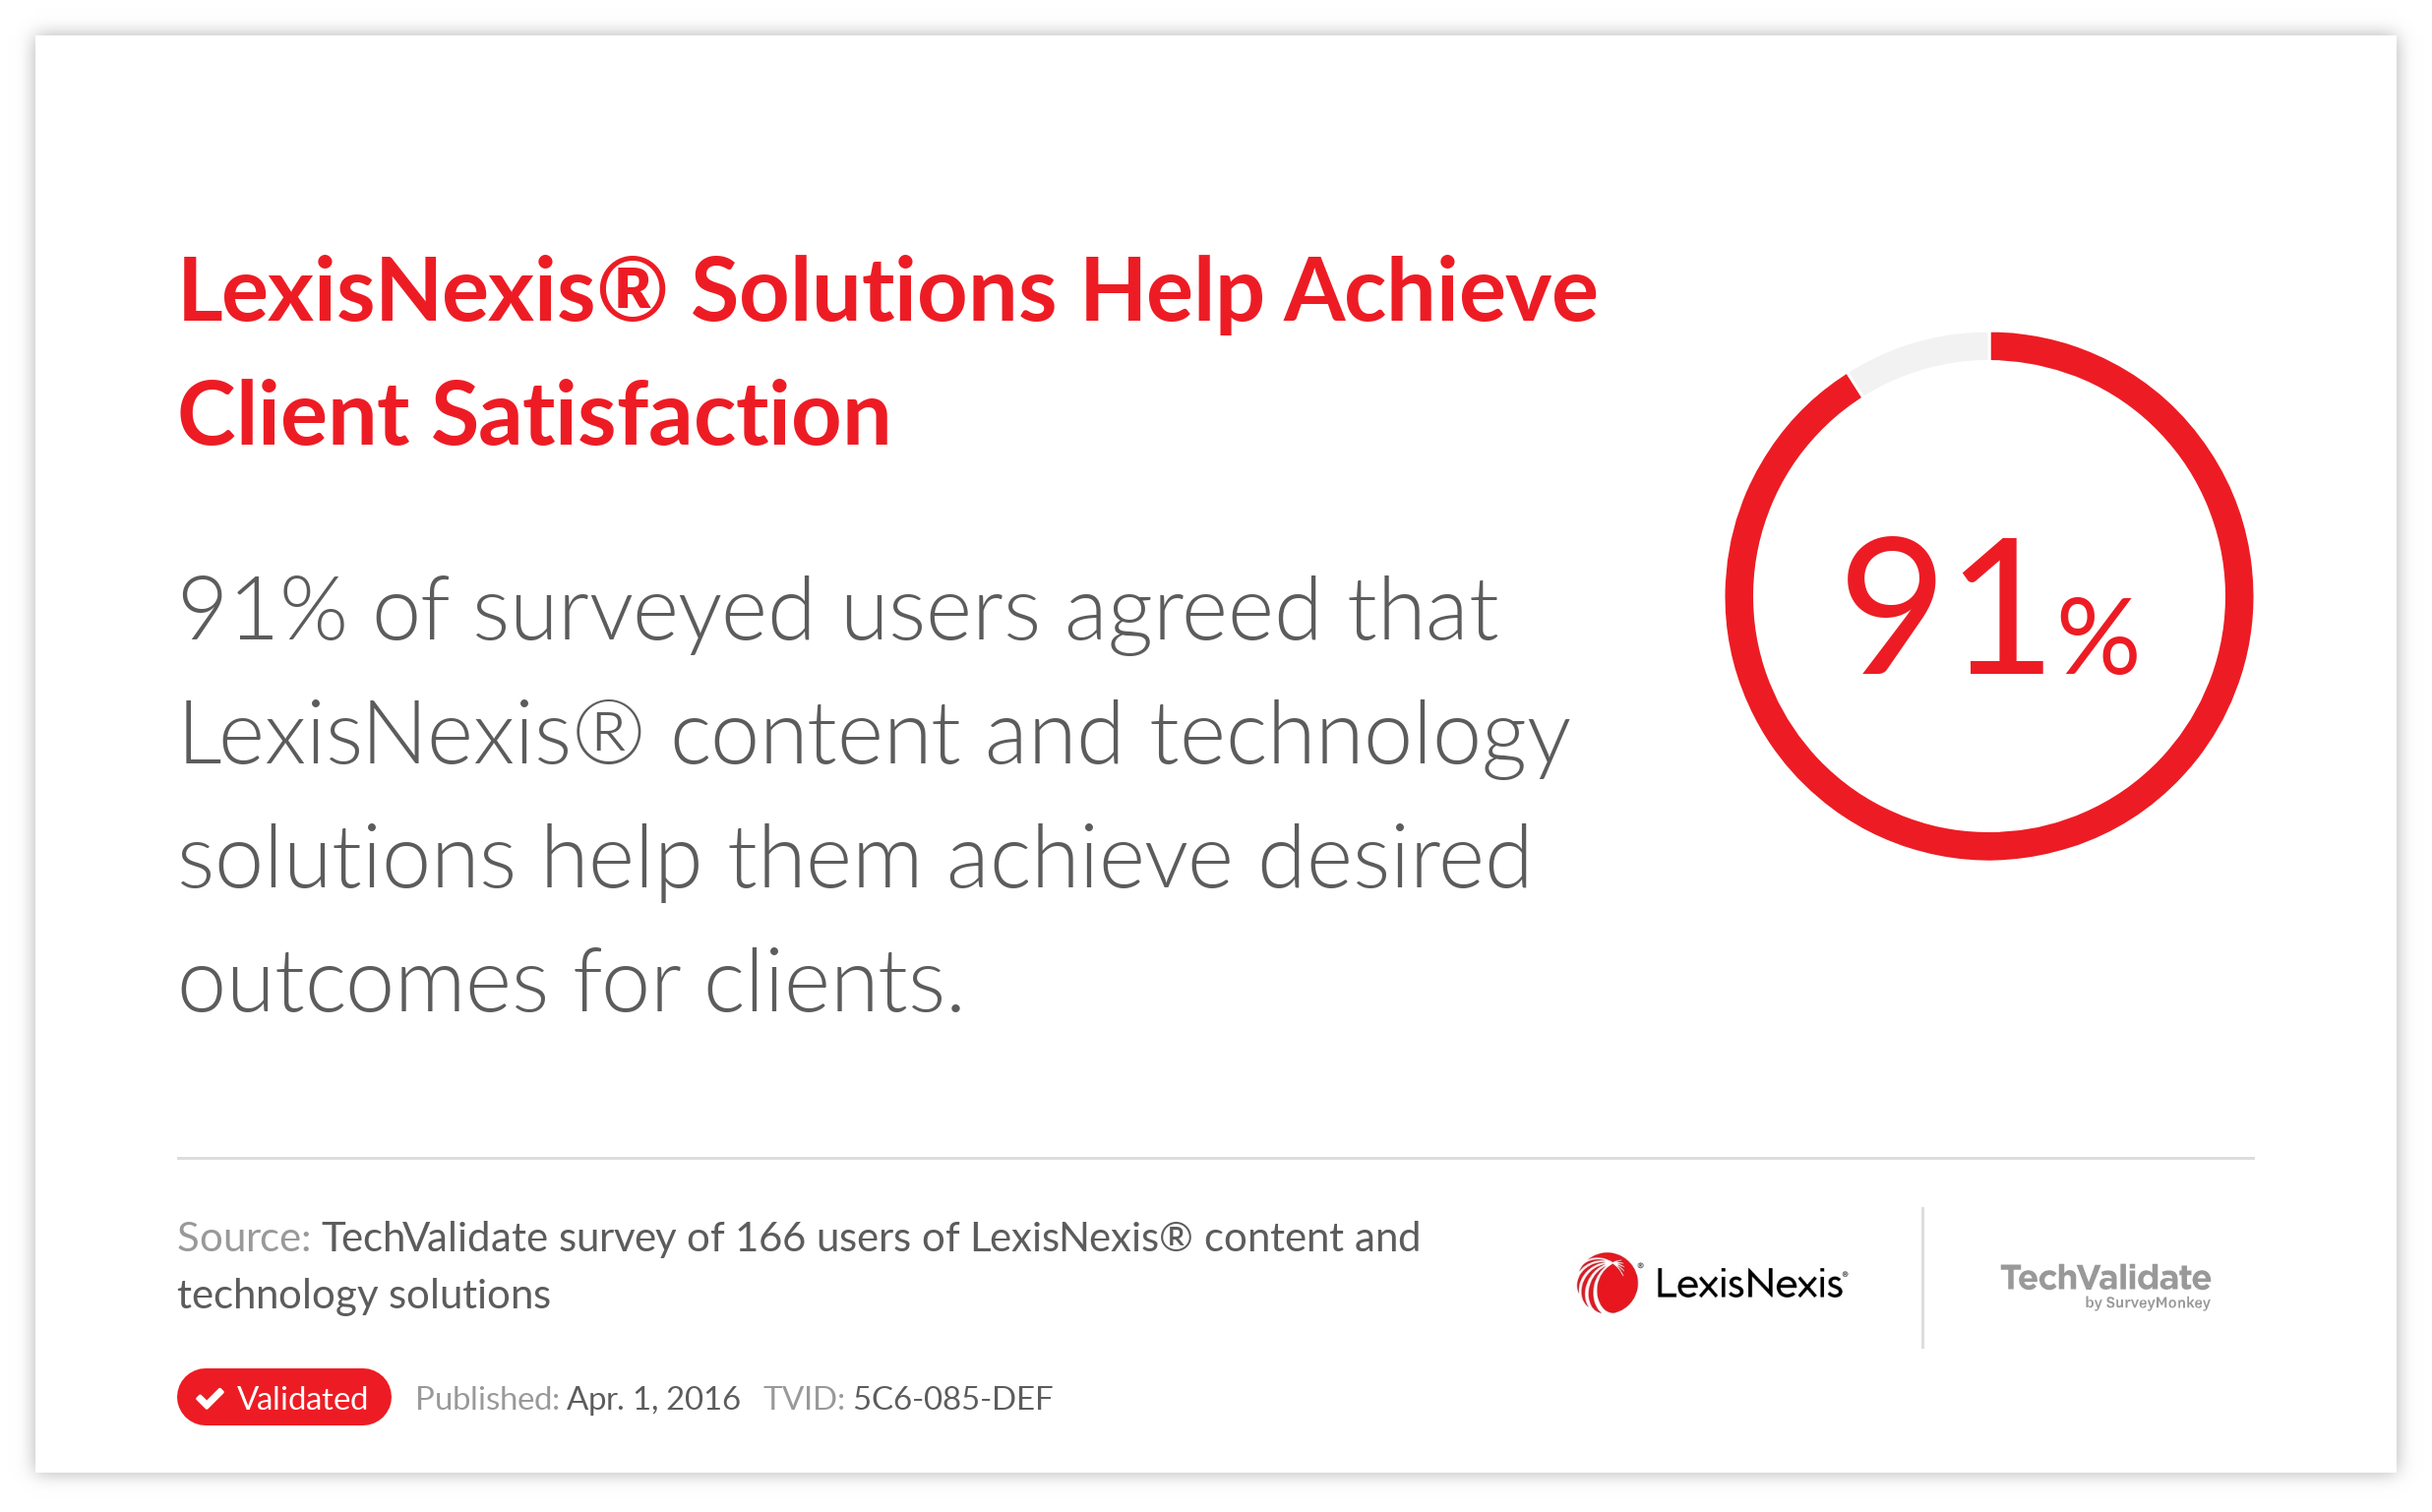 LexisNexis® Solutions Help Achieve Client Satisfaction